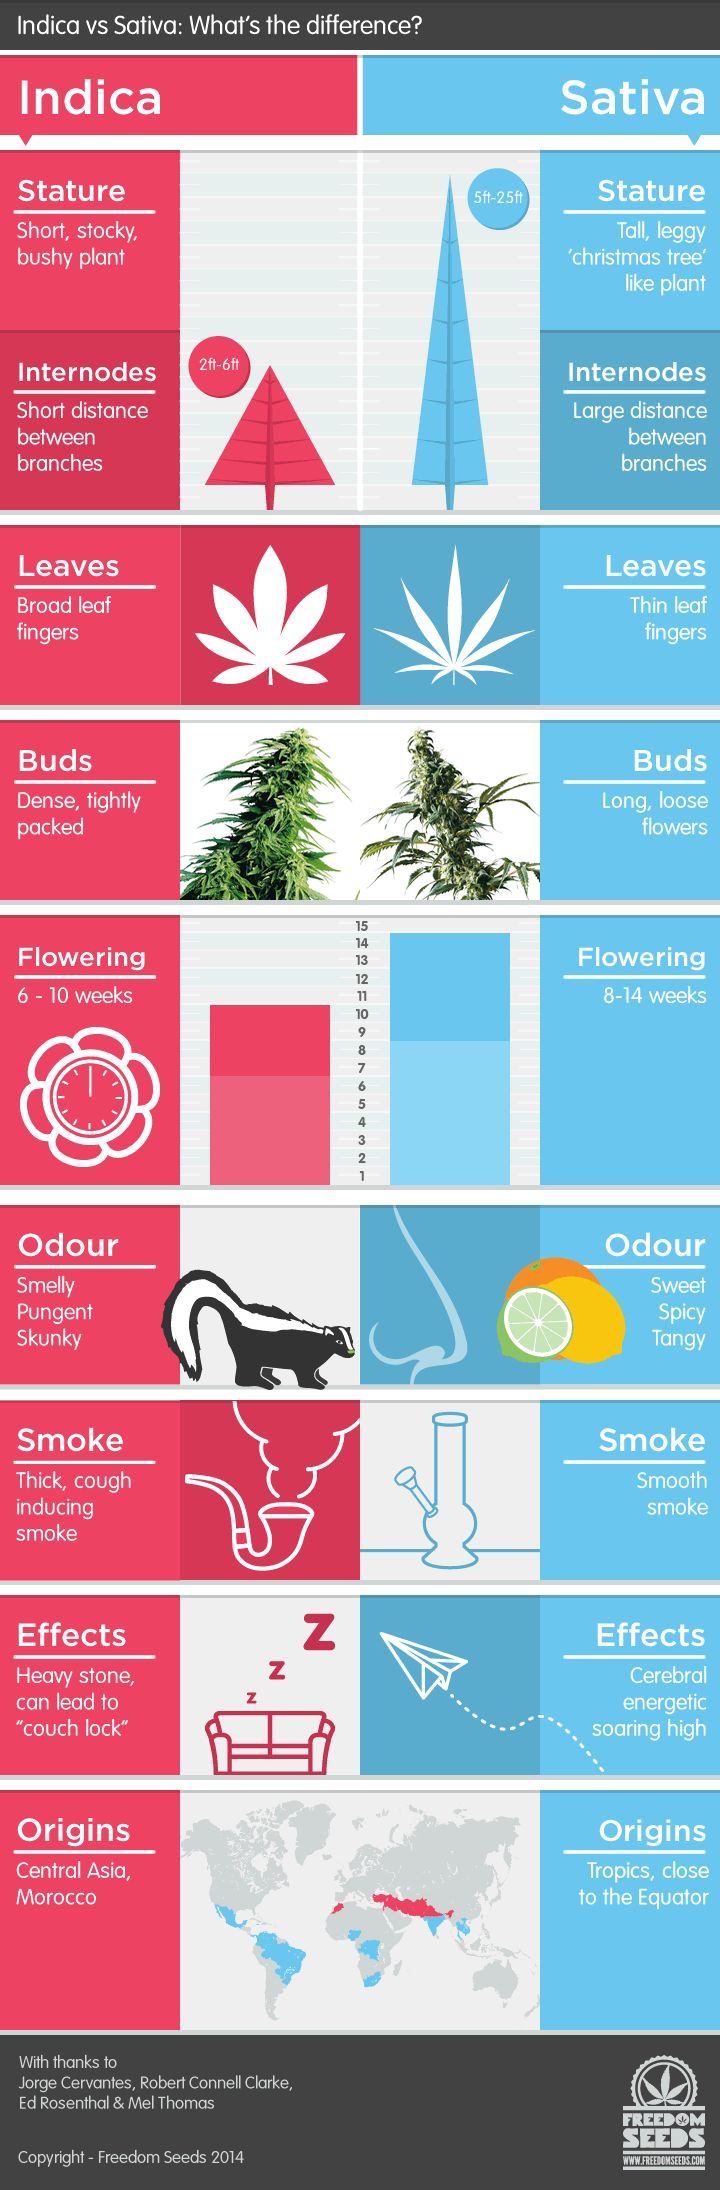 Indica-vs-Sativa-infographic. Save money, grow your own marijuana and make small edible delicious marijuana candies. MARIJUANA - Guide to Buying, Growing, Harvesting, and Making Medical Marijuana Oil and Delicious Candies to Treat Pain and Ailments by Mary Bendis, Second Edition. Just $2.99 for great e-book! www.muzzymemo.com